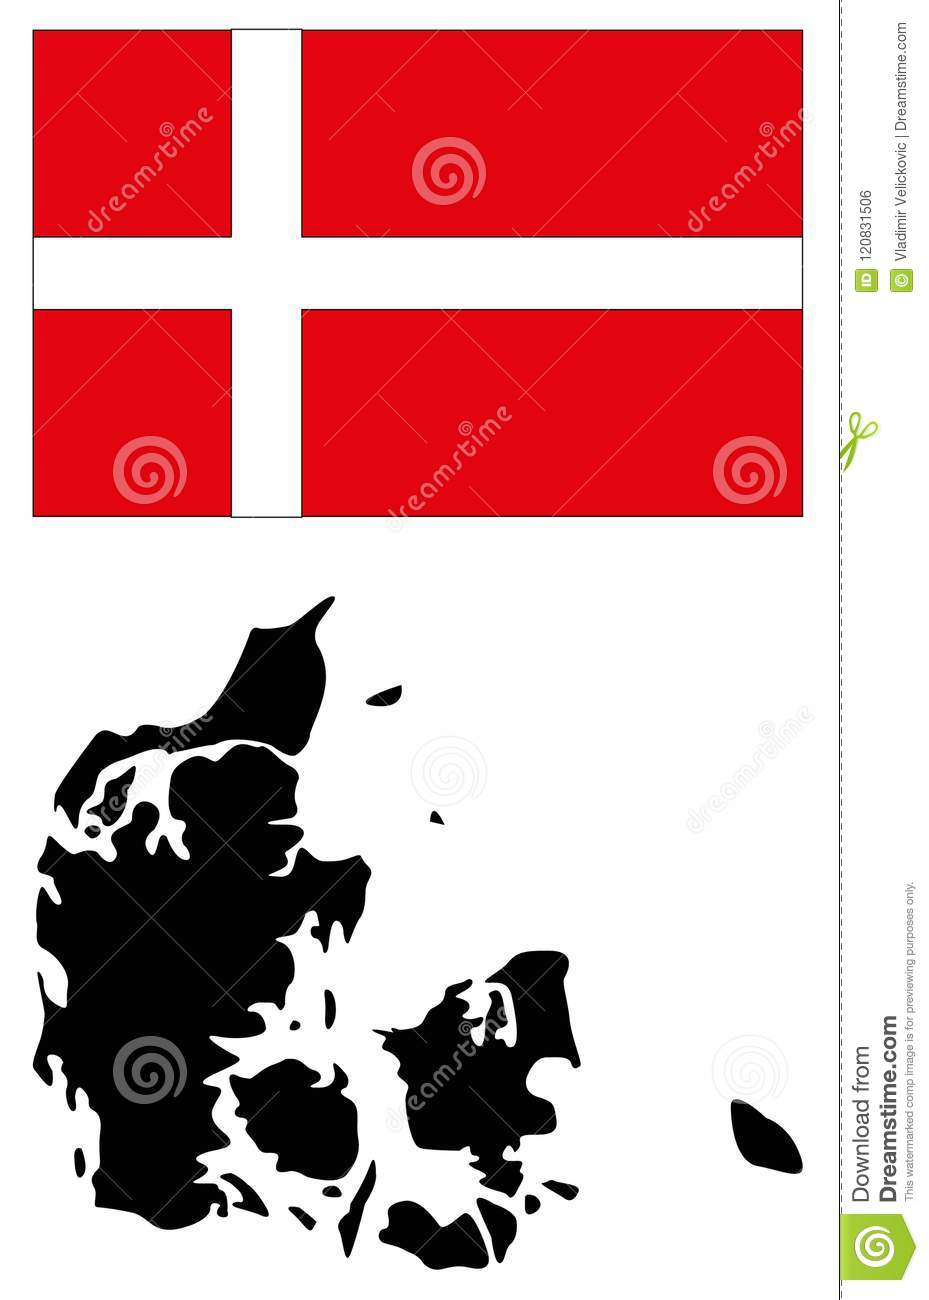 Denmark Map And Flag - Nordic Country And A Sovereign State In ... on russian federation map, united arab emirates map, republic of mexico map, people's republic of china map, commonwealth of dominica map, republic of turkey map, republic of maldives map, republic of nauru map, republic of cyprus map, khmer kingdom map, bosnia and herzegovina map, republic of moldova map, united kingdom map, state of israel map, republic of croatia map, antigua and barbuda map, republic of korea map, state of new mexico map, republic of kenya map,